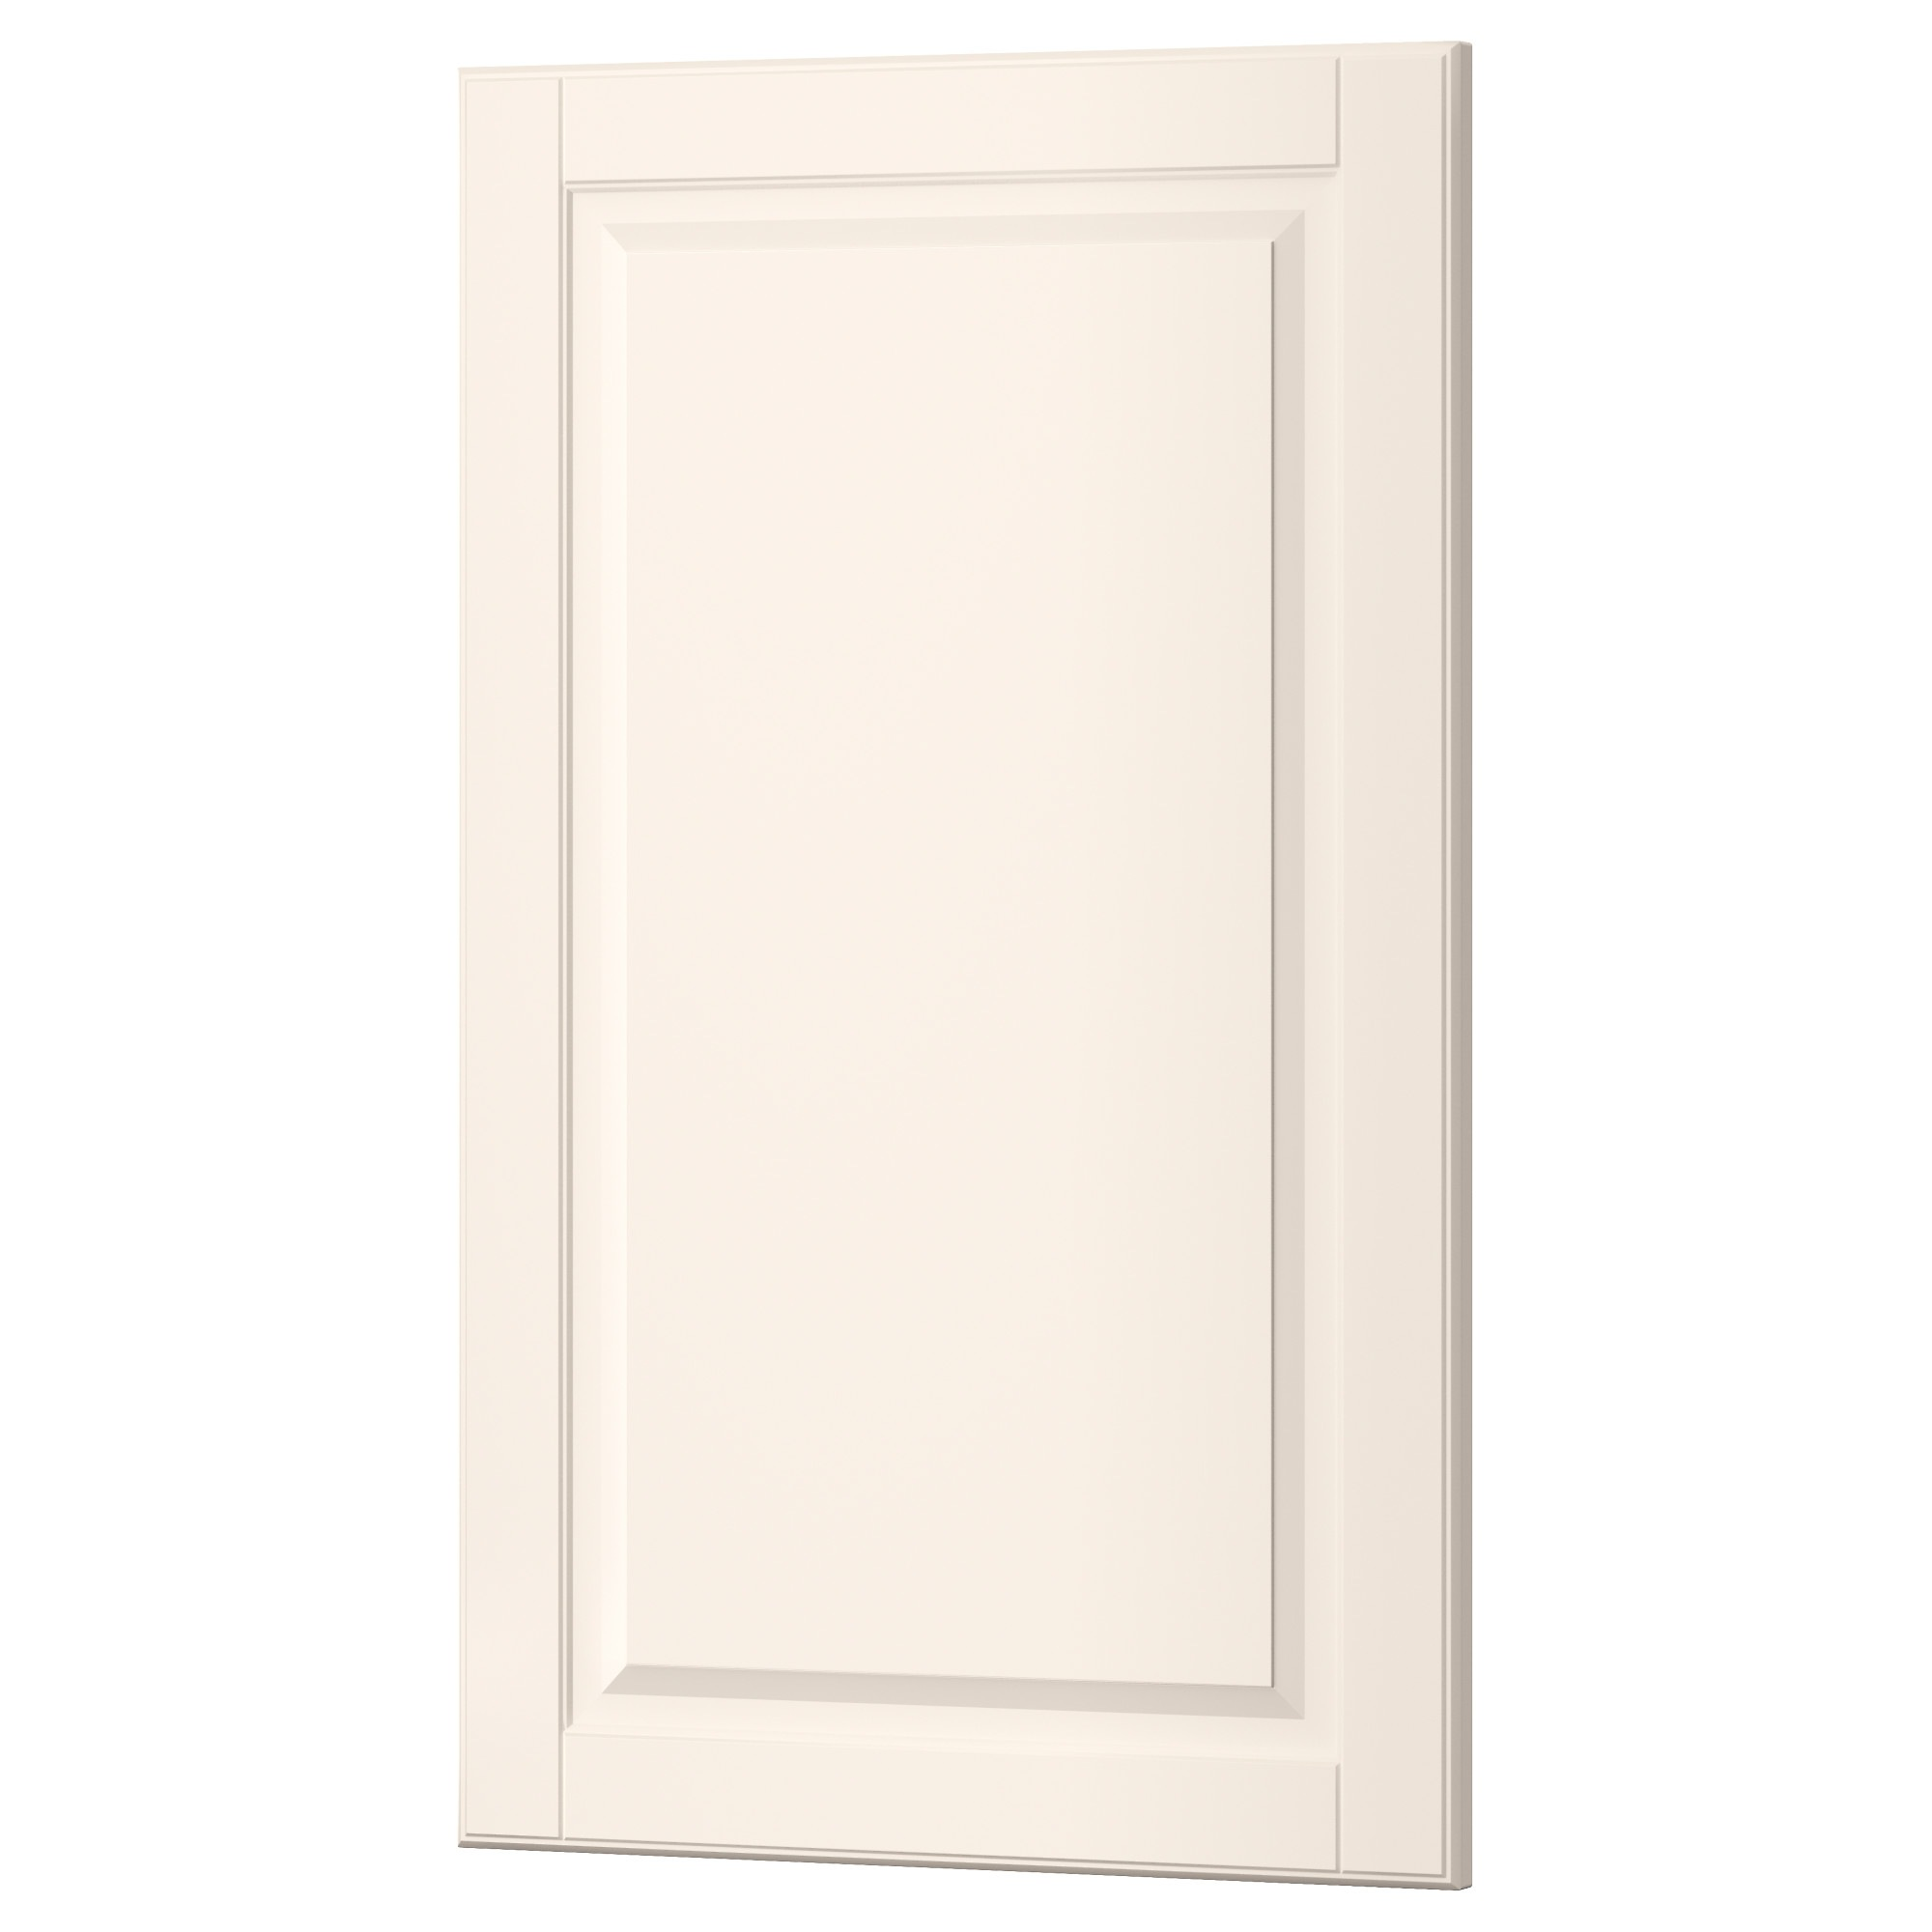 White Kitchen Cabinet Door cabinet doors - sektion system - ikea